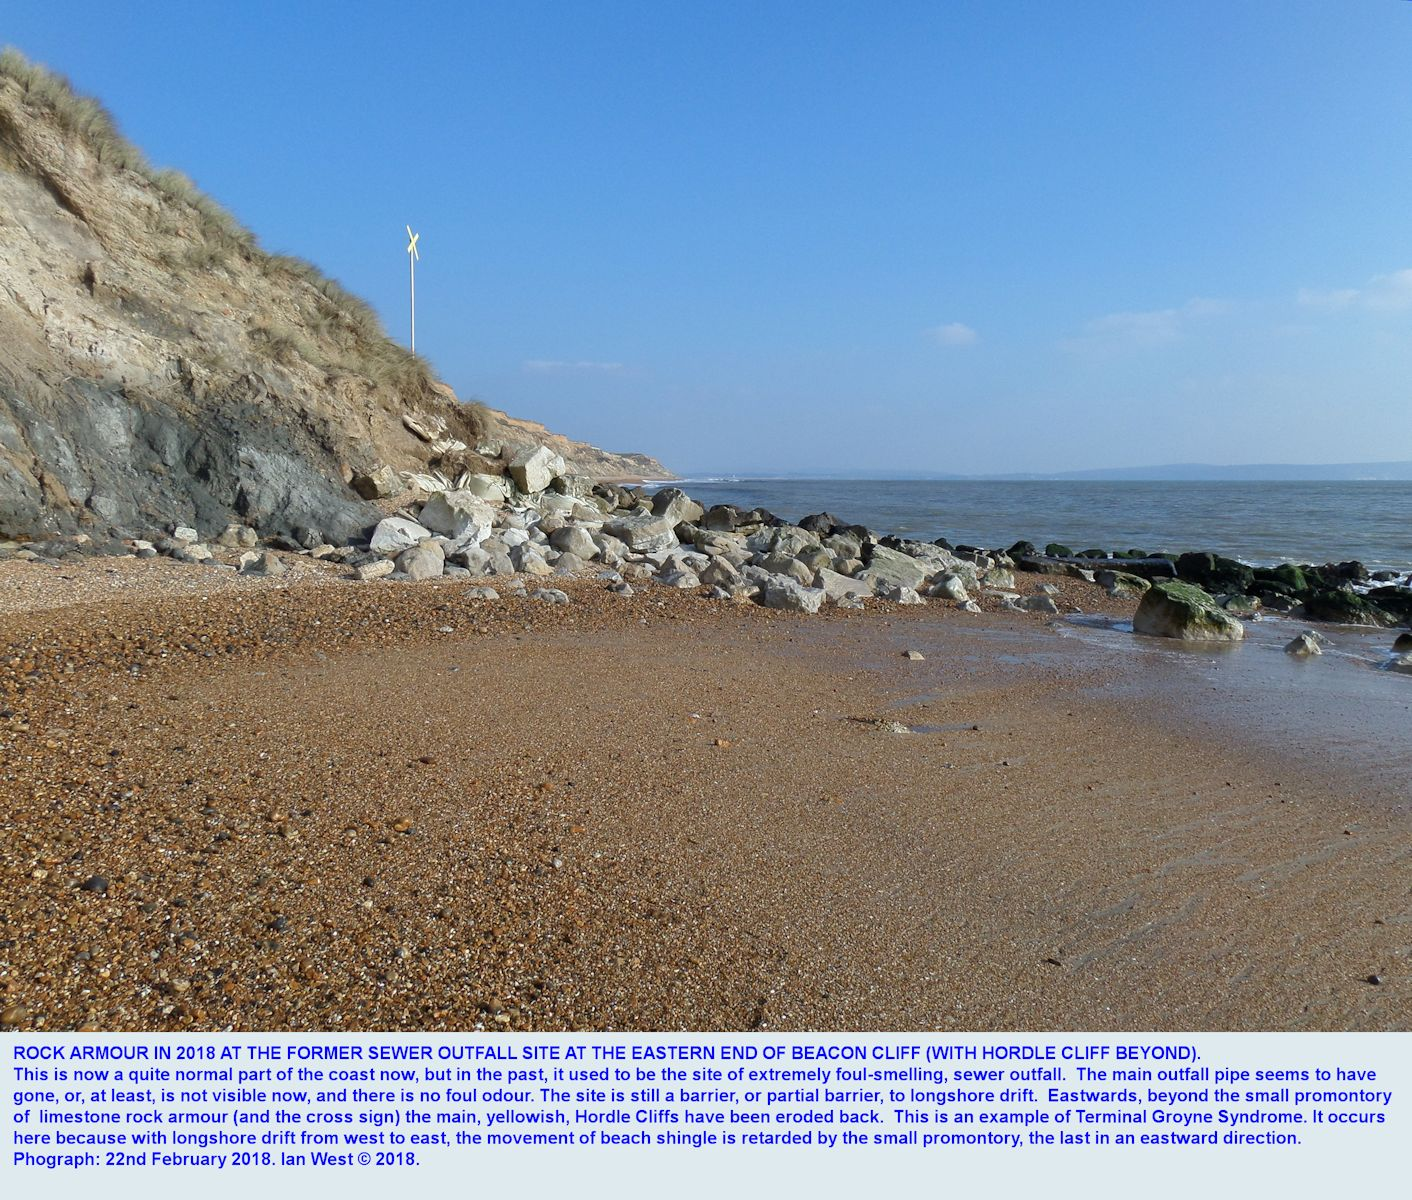 Terminal Groyne Syndrome seen at beach level, a small promontory of rock armour at the Sewer outfall area retards shingle movement,  at the eastern end of Beacon Cliff, between Barton-on-Sea and Hordle Cliff, Hampshire, southern England, 22nd February 2018